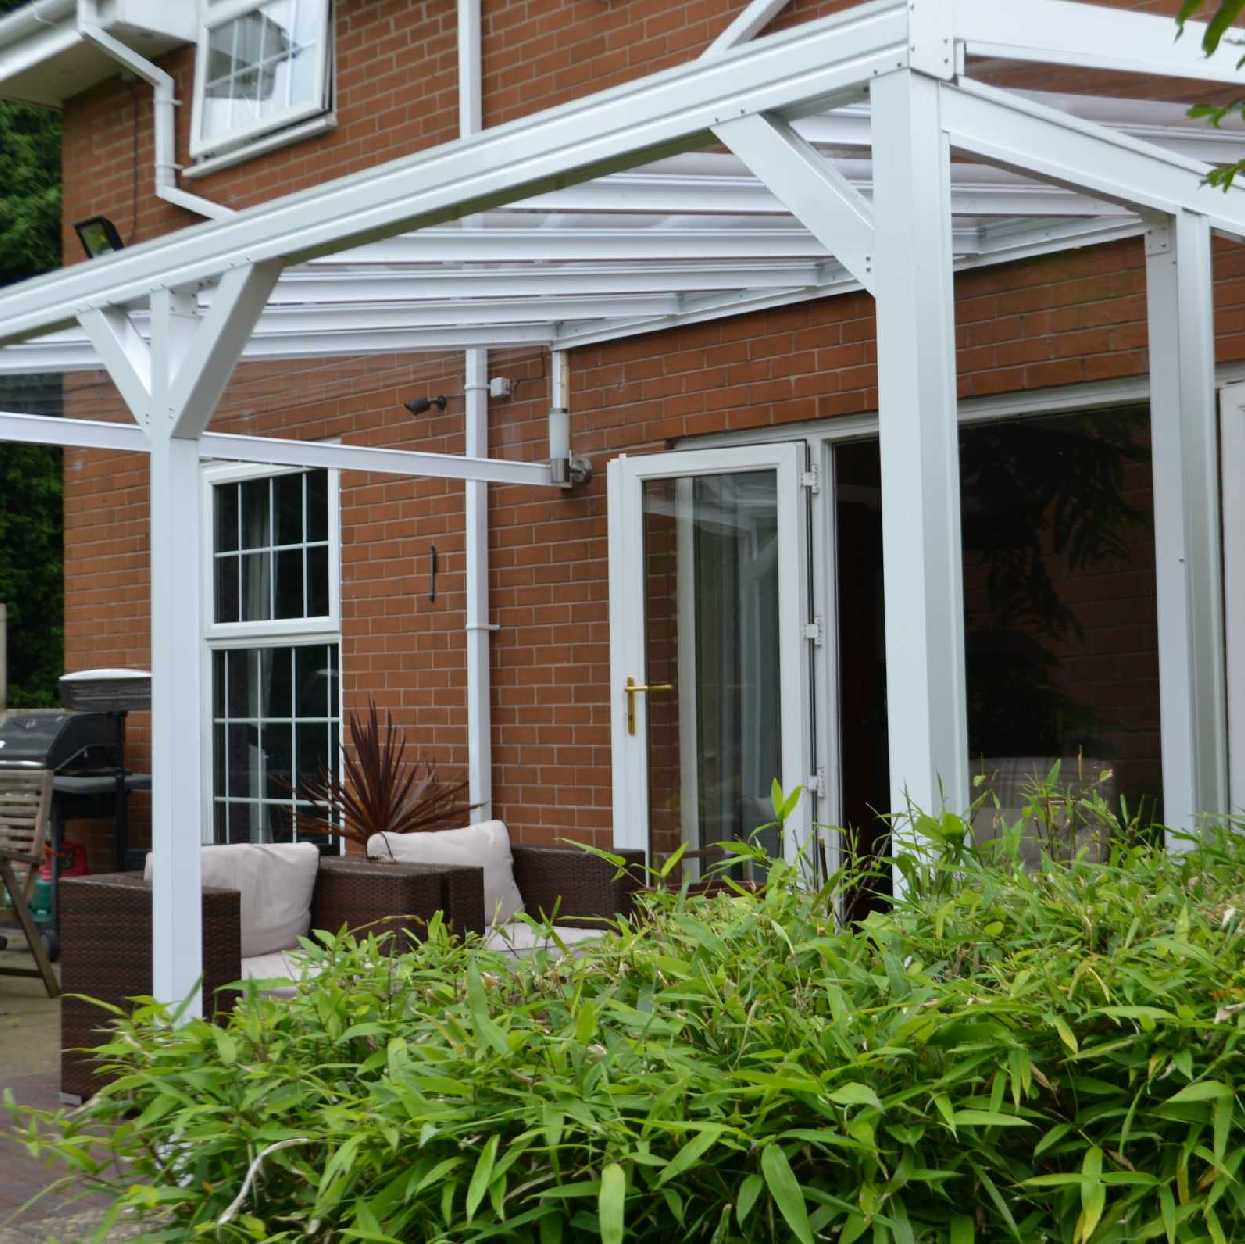 Omega Smart White Lean-To Canopy with 6mm Glass Clear Plate Polycarbonate Glazing - 3.5m (W) x 1.5m (P), (3) Supporting Posts from Omega Build